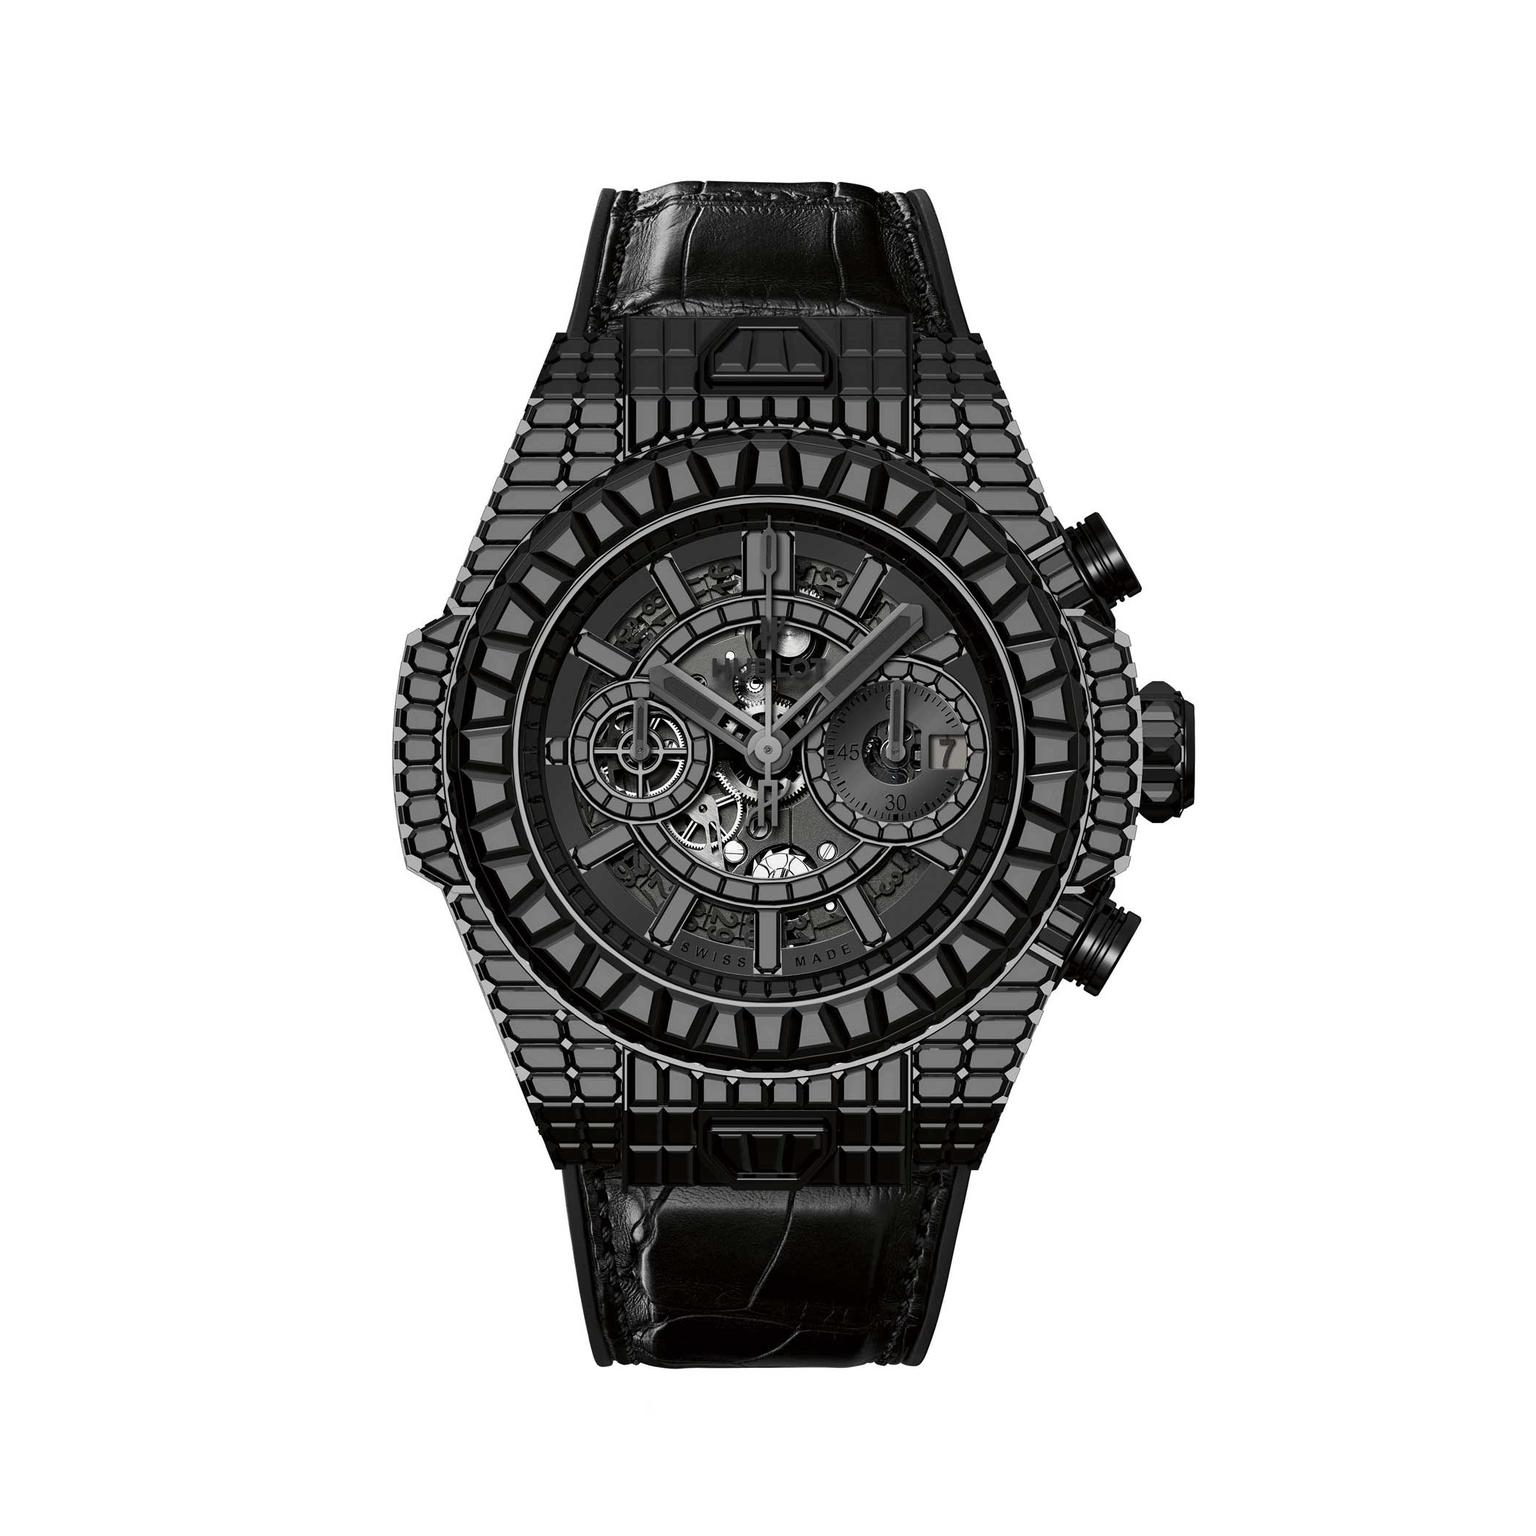 Hublot Big Bang 10 Year HJ black diamonds